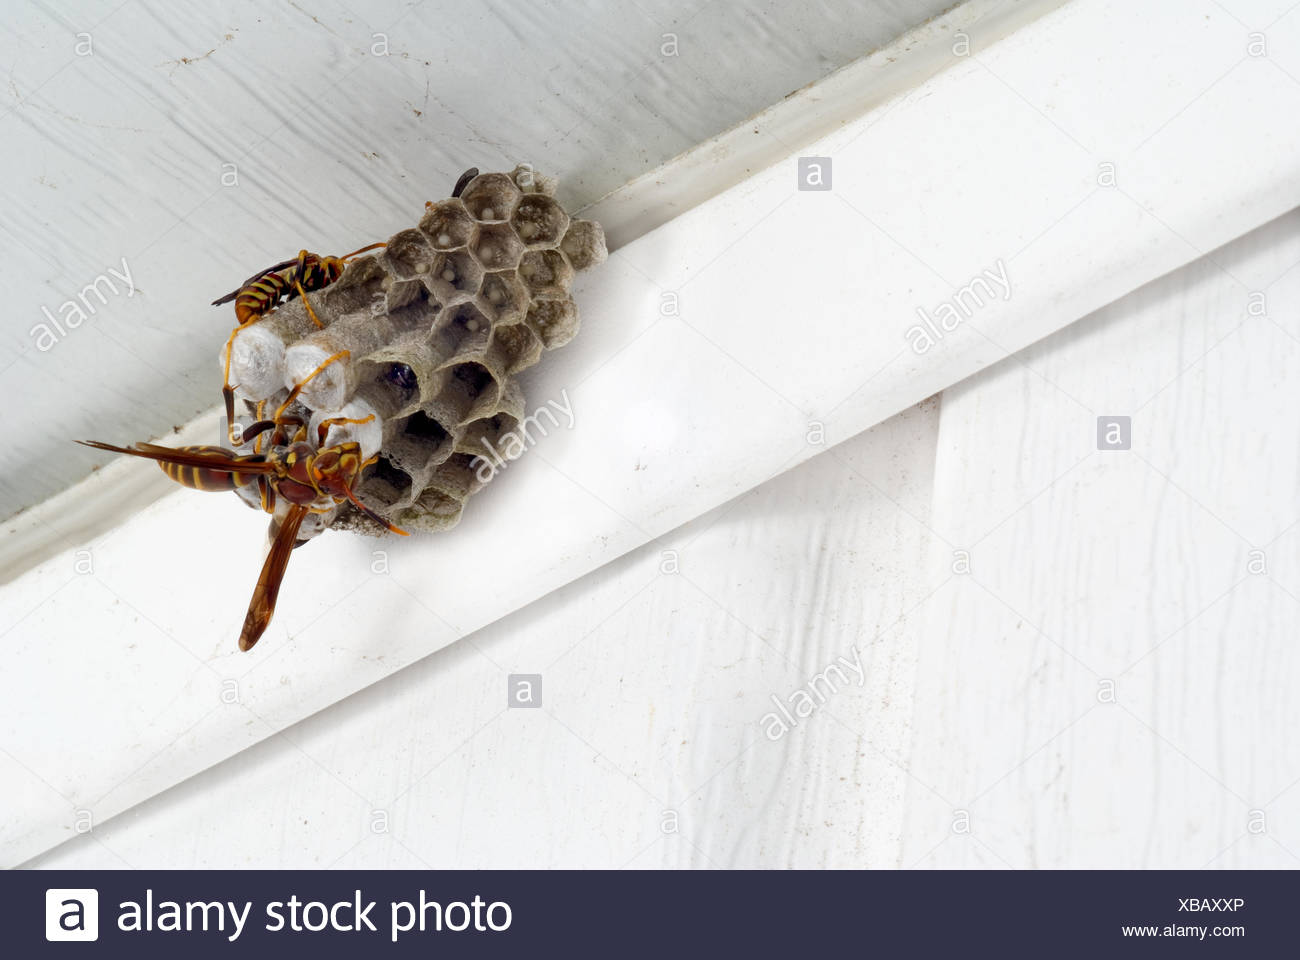 Hornets Nest Hive Stock Photos & Hornets Nest Hive Stock Images ...